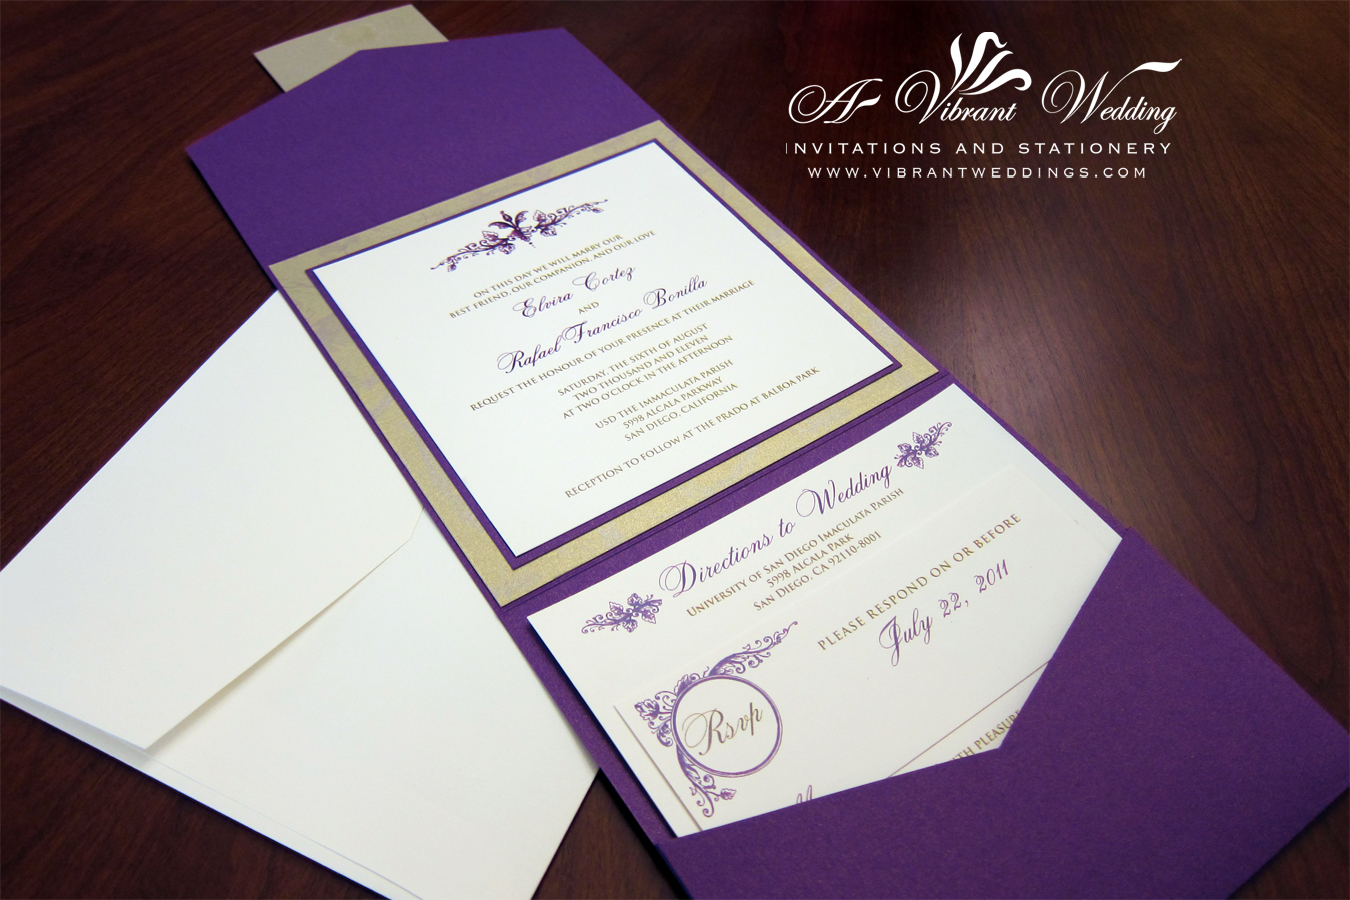 Cheap Wedding Invitations Cheap Wedding Invitations How to Save